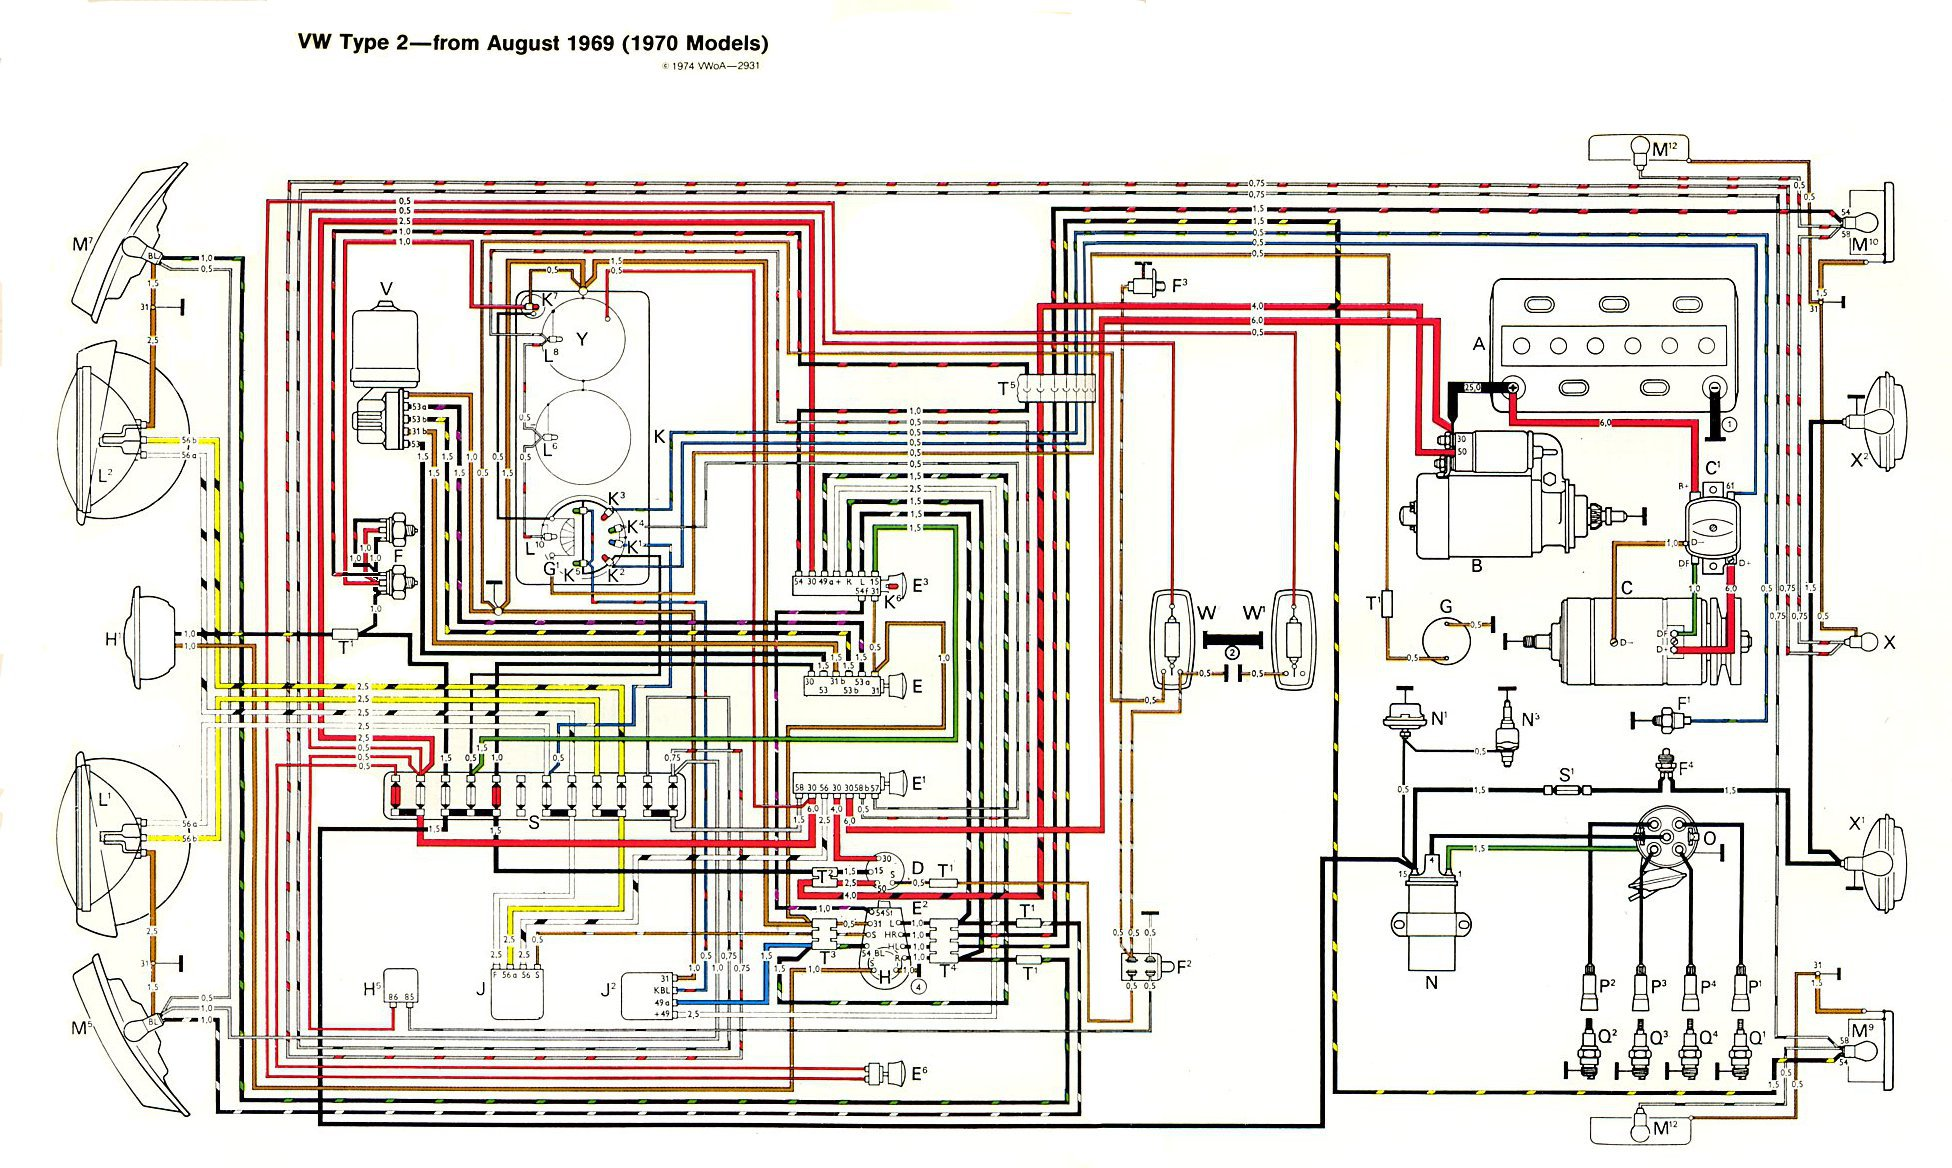 1974 Vw Bus Wiring Diagram Opinions About Volkswagen Beetle Ecm Thesamba Com Type 2 Diagrams Rh 71 1973